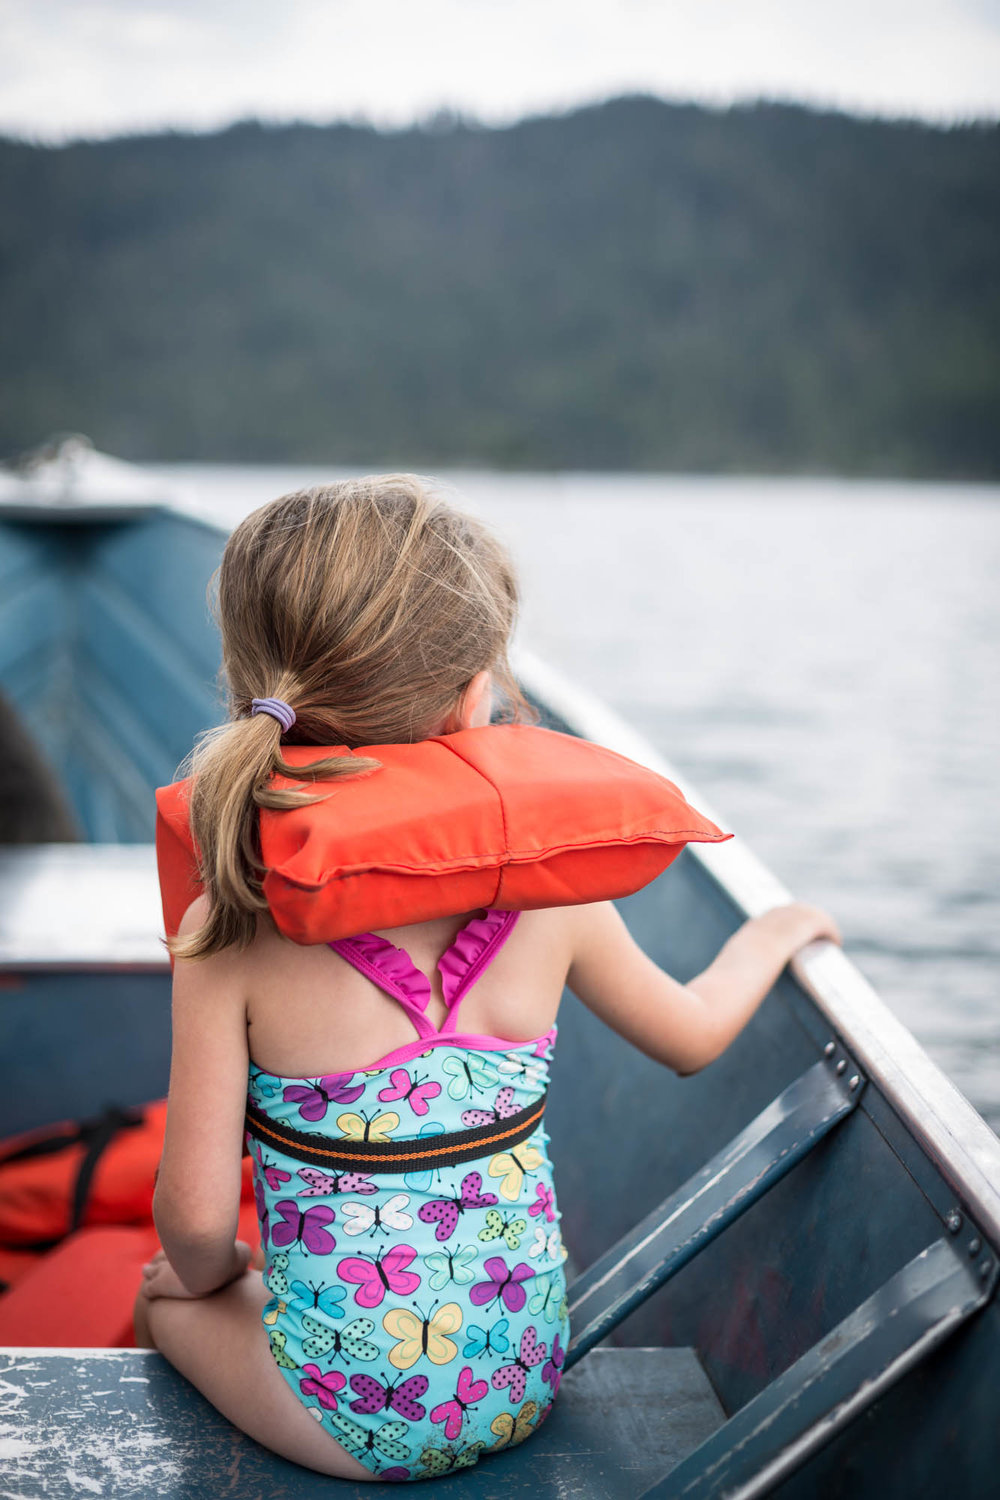 Young girl wearing a life vest on a small boat